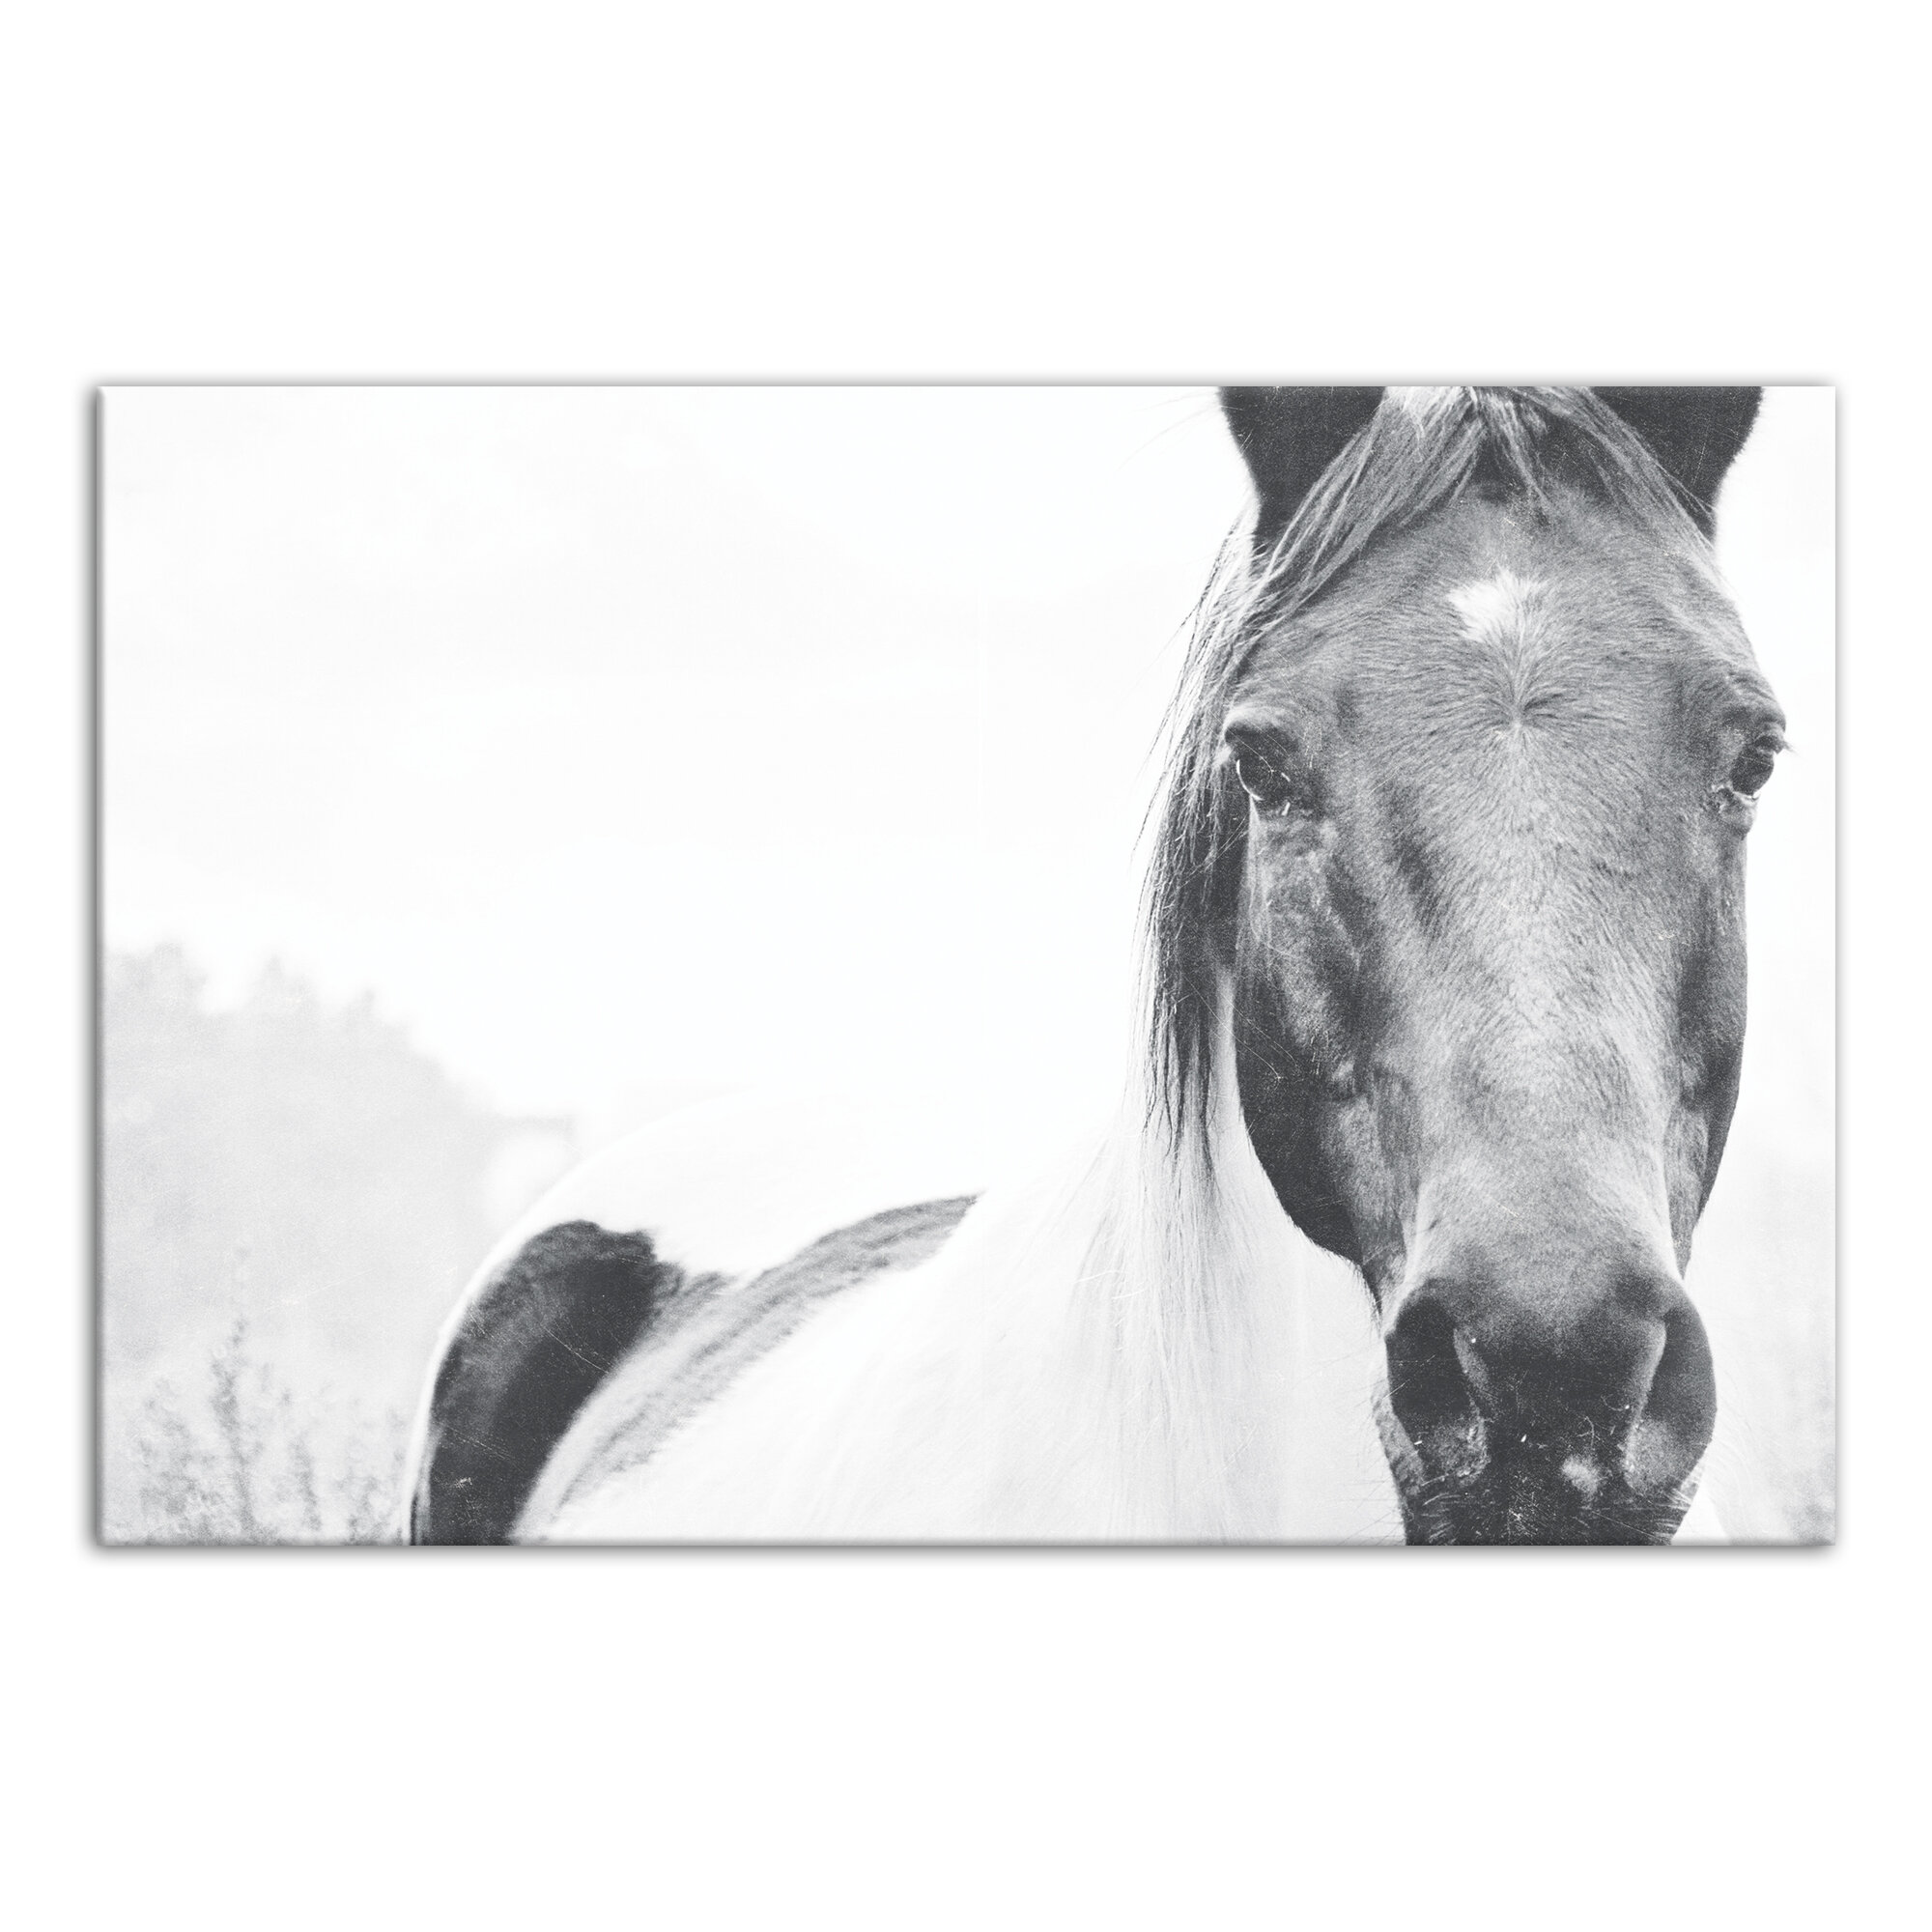 Union Rustic Lone Horse Graphic Art Print On Canvas Reviews Wayfair